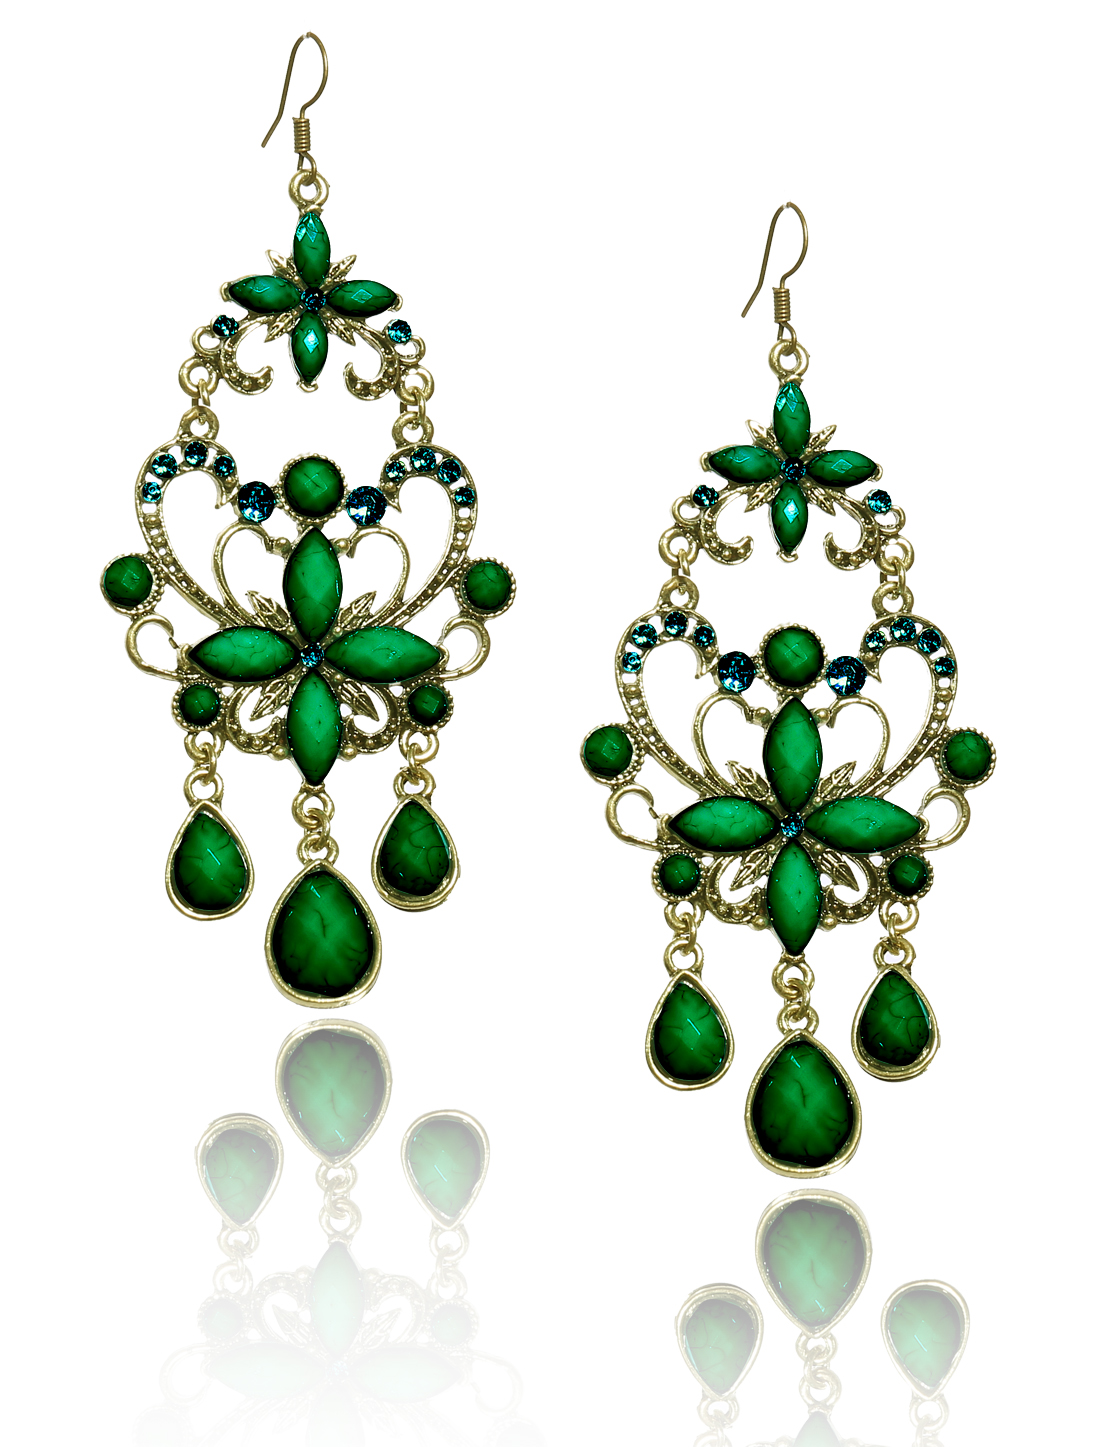 Women Retro Green Cross Shaped Crystal Resin Drop Dangle Hook Earring Ear Stud